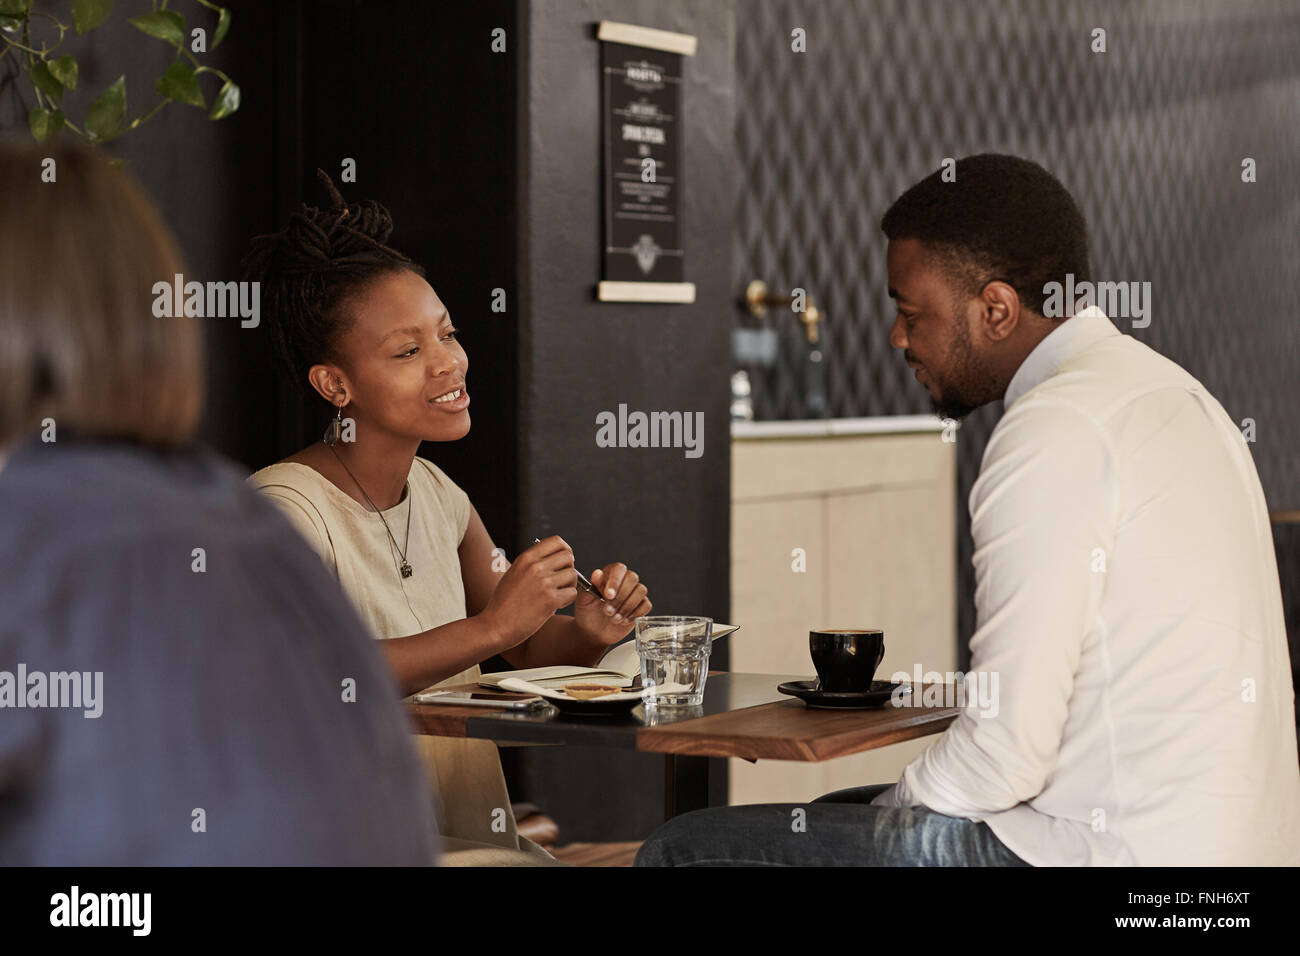 African couple enjoying coffee date in a modern cafe - Stock Image